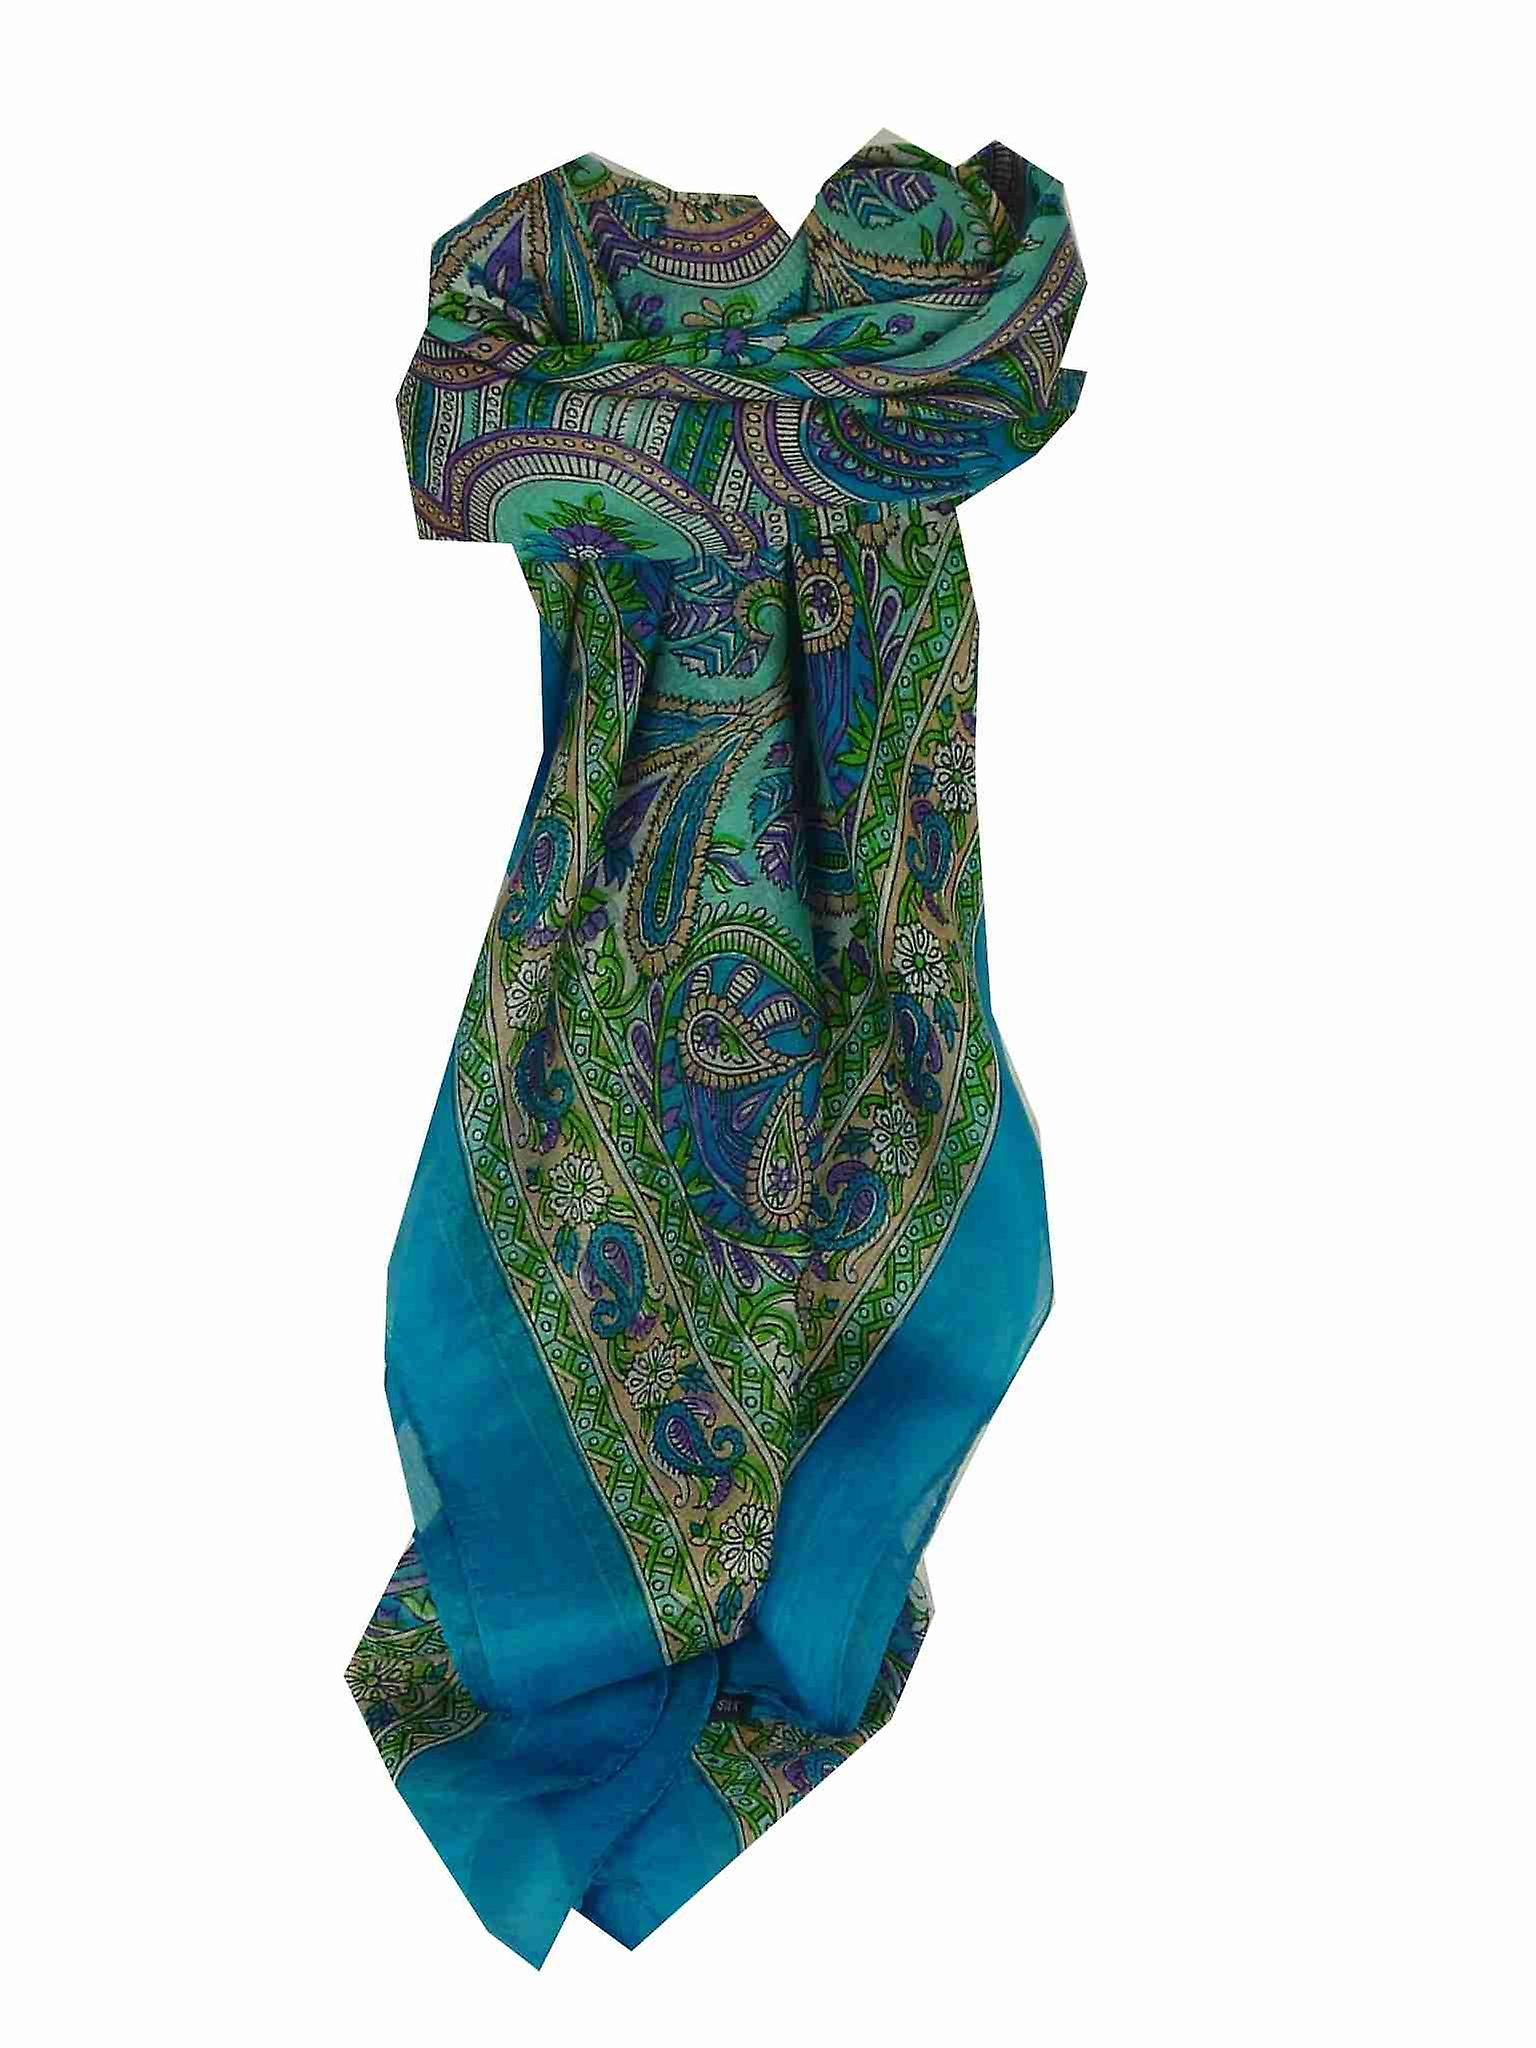 Mulberry Silk Traditional Square Scarf Colaba Blue by Pashmina & Silk